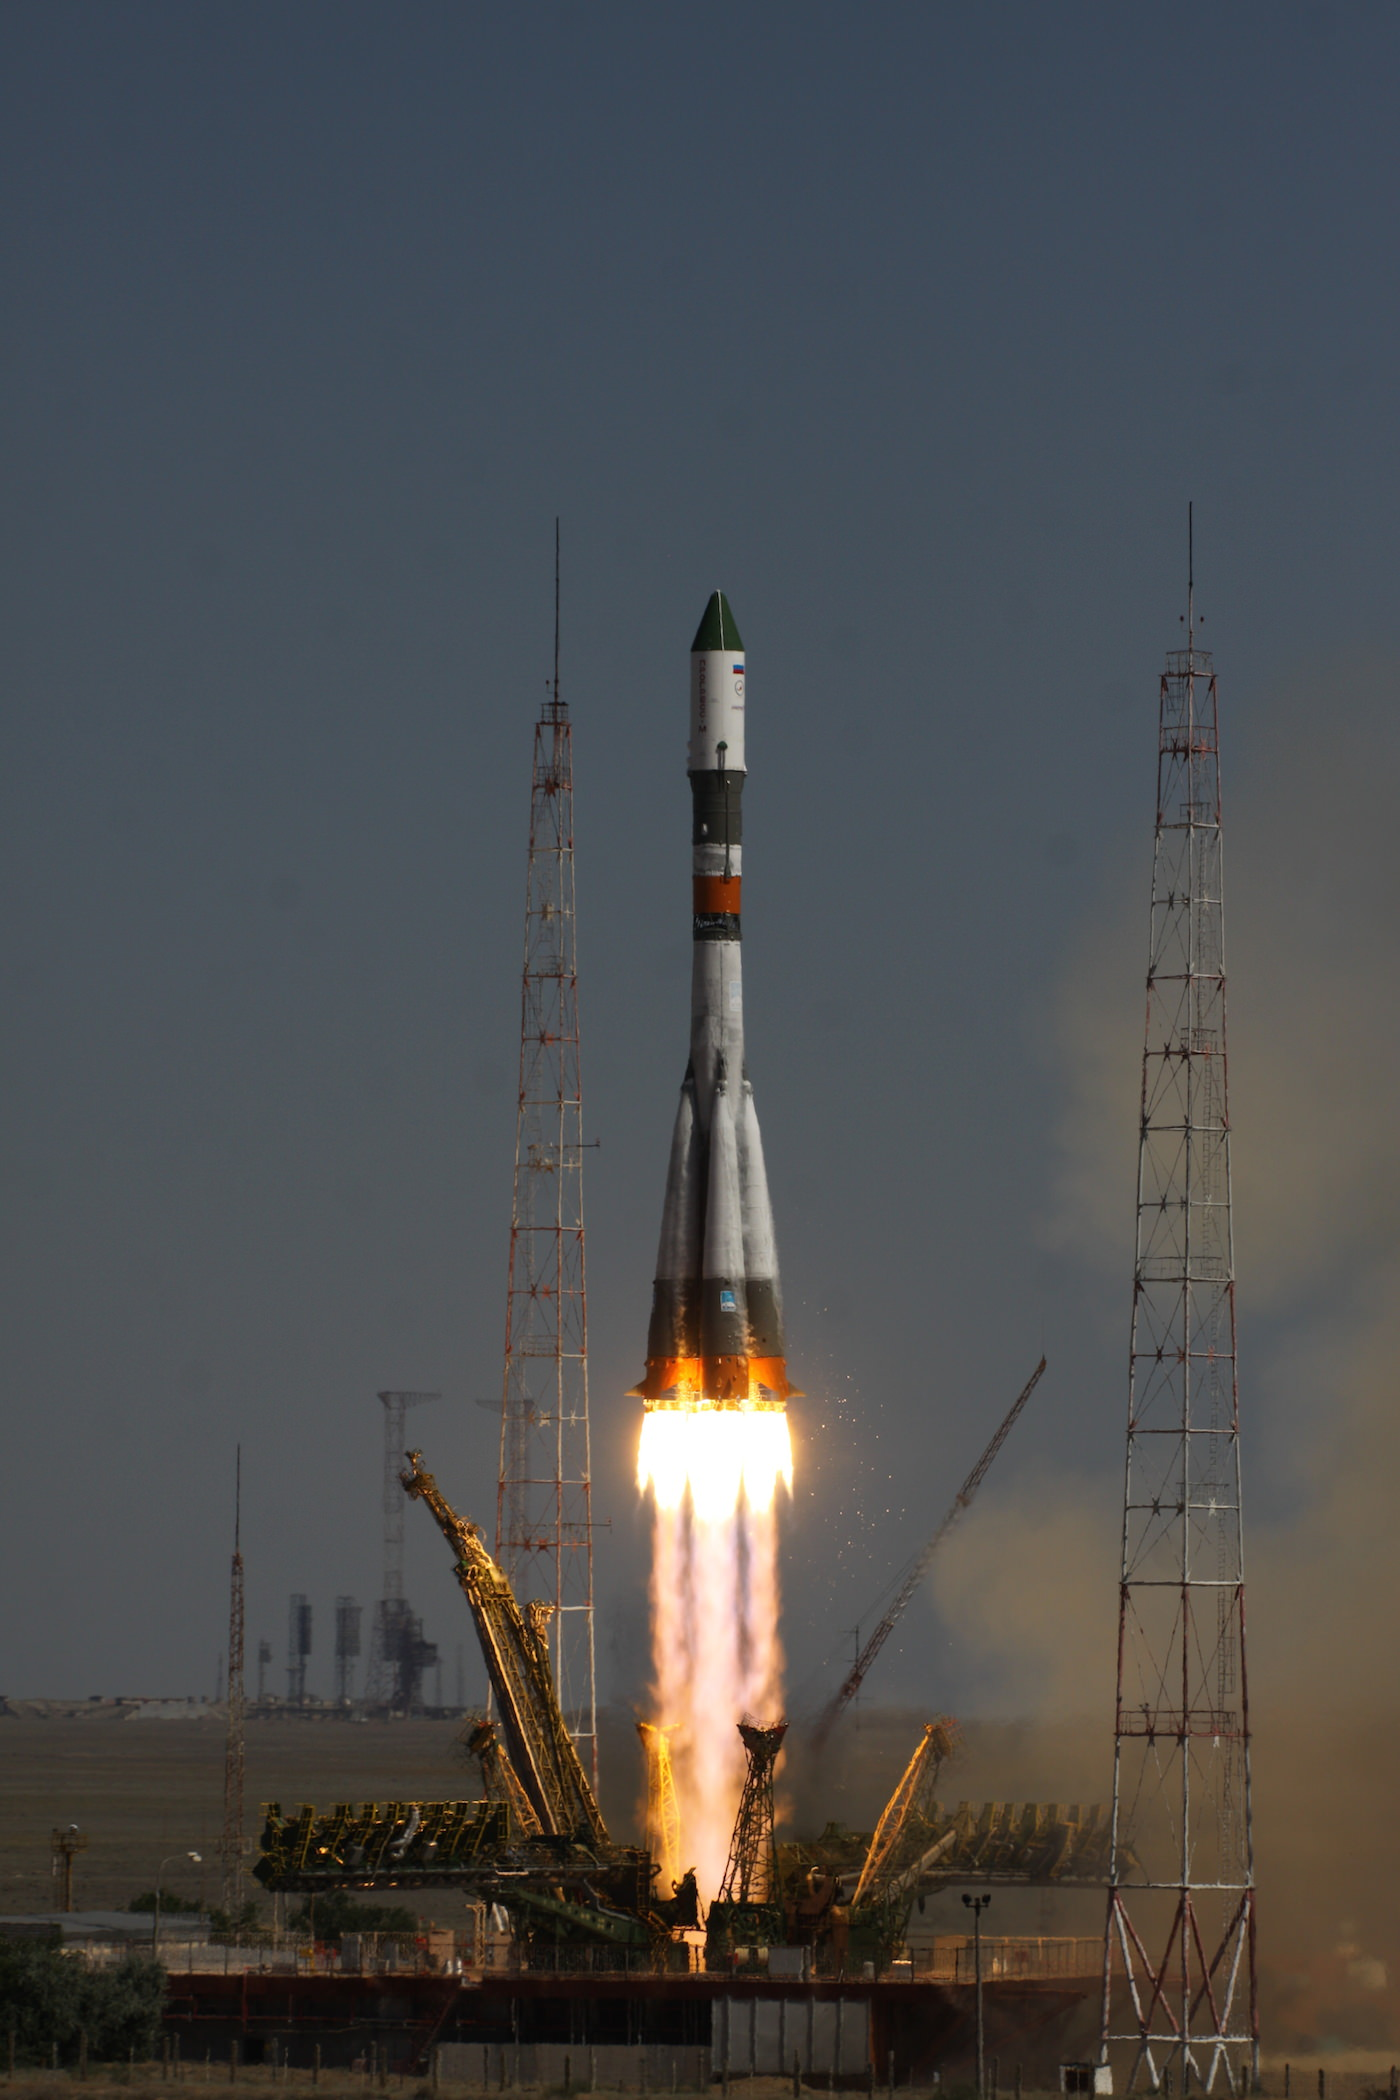 Blastoff of the Russian Progress 60 resupply ship to the ISS from the Baikonur Cosmodrome on July 3, 2015. Credit: Roscosmos